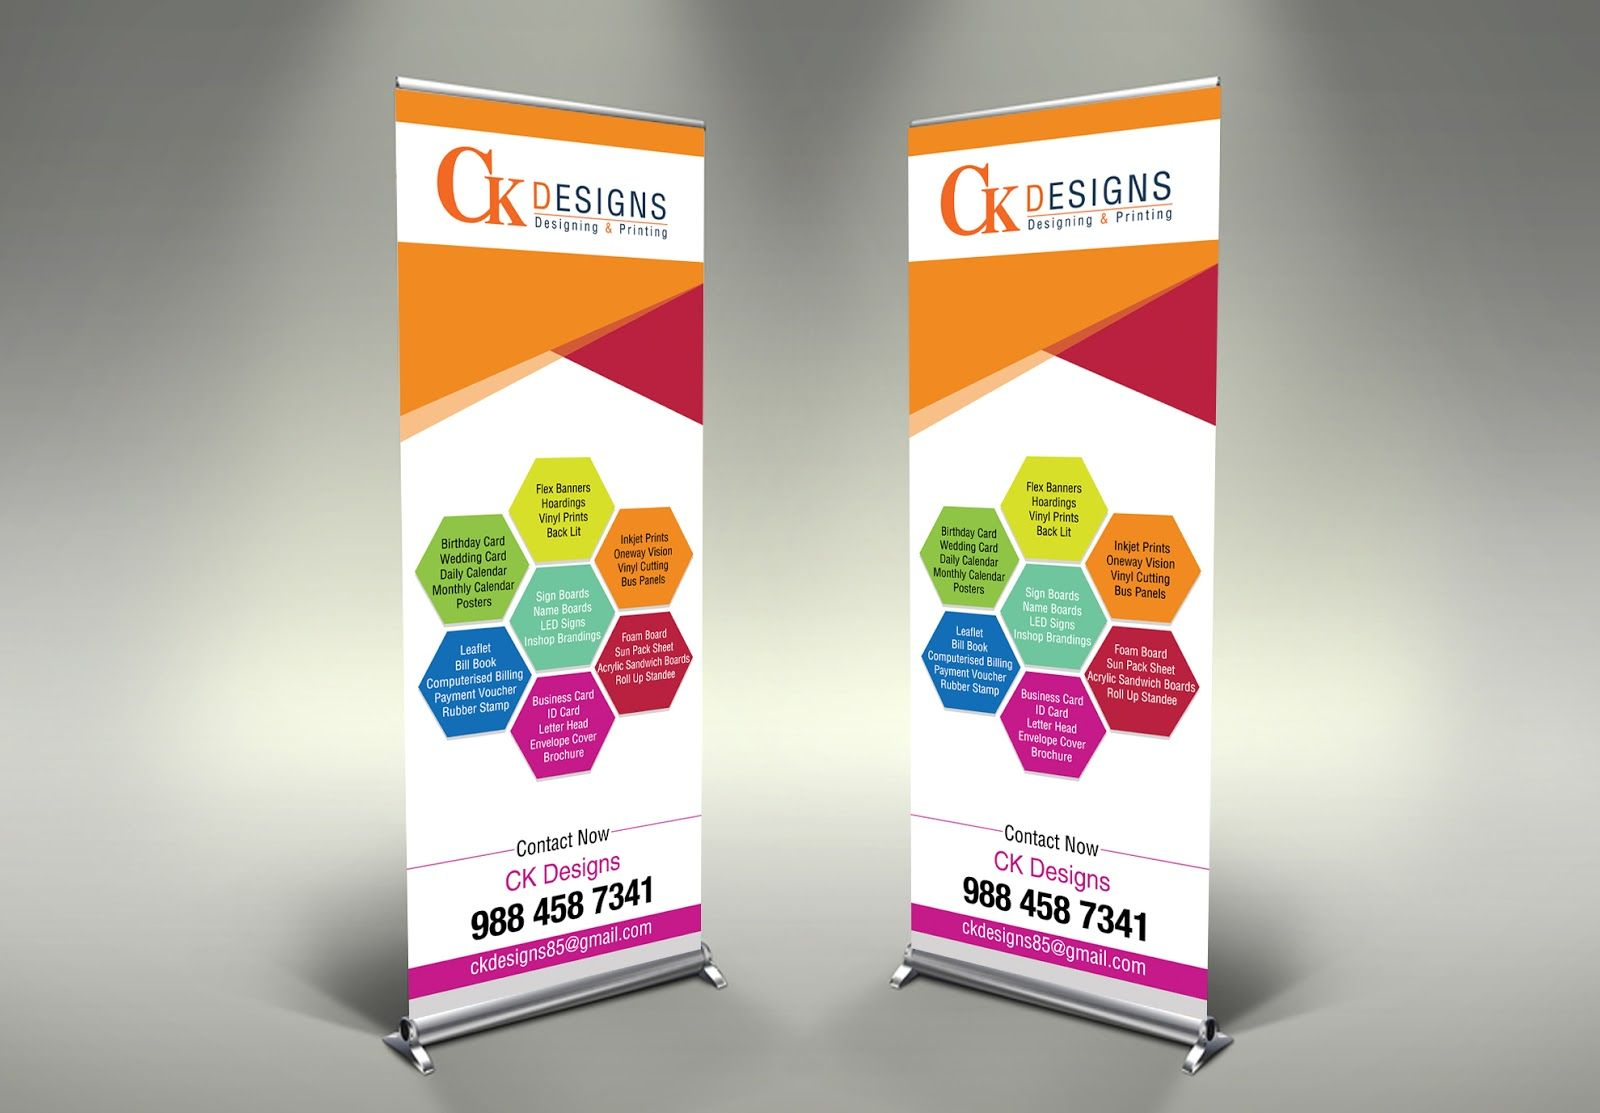 Design printing roll up banner ingg jpeg image 1600 1113 design printing roll up banner ingg jpeg image 1600 reheart Images